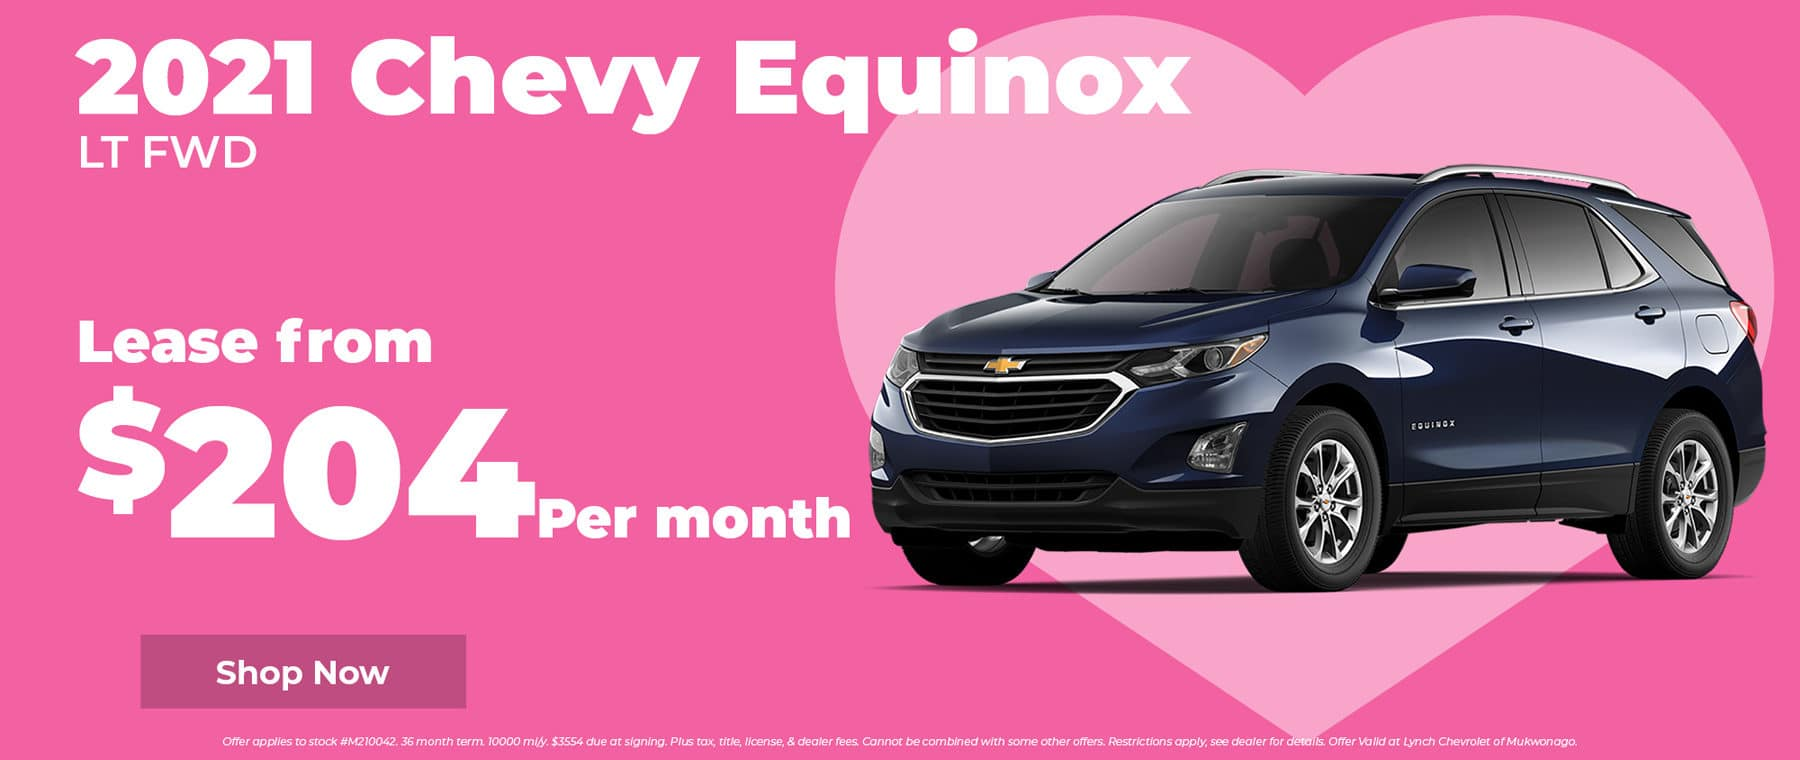 2021 Chevy Equinox for $204 per month in Mukwonago WI